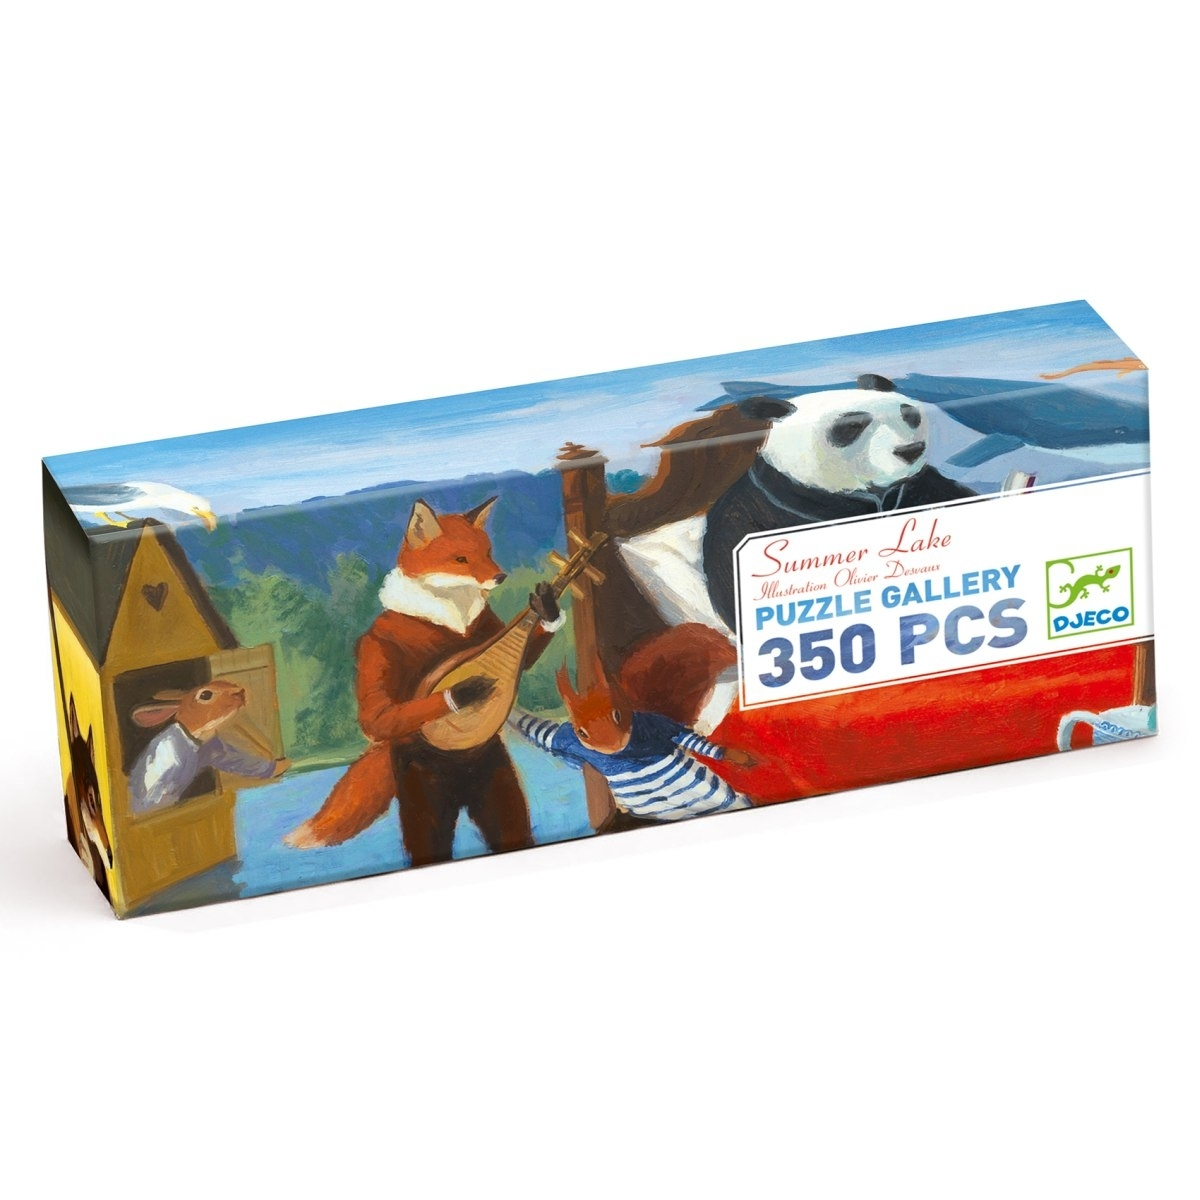 Djeco Puzzle Galerie Sommer See 350 Teile, Alter 7 +